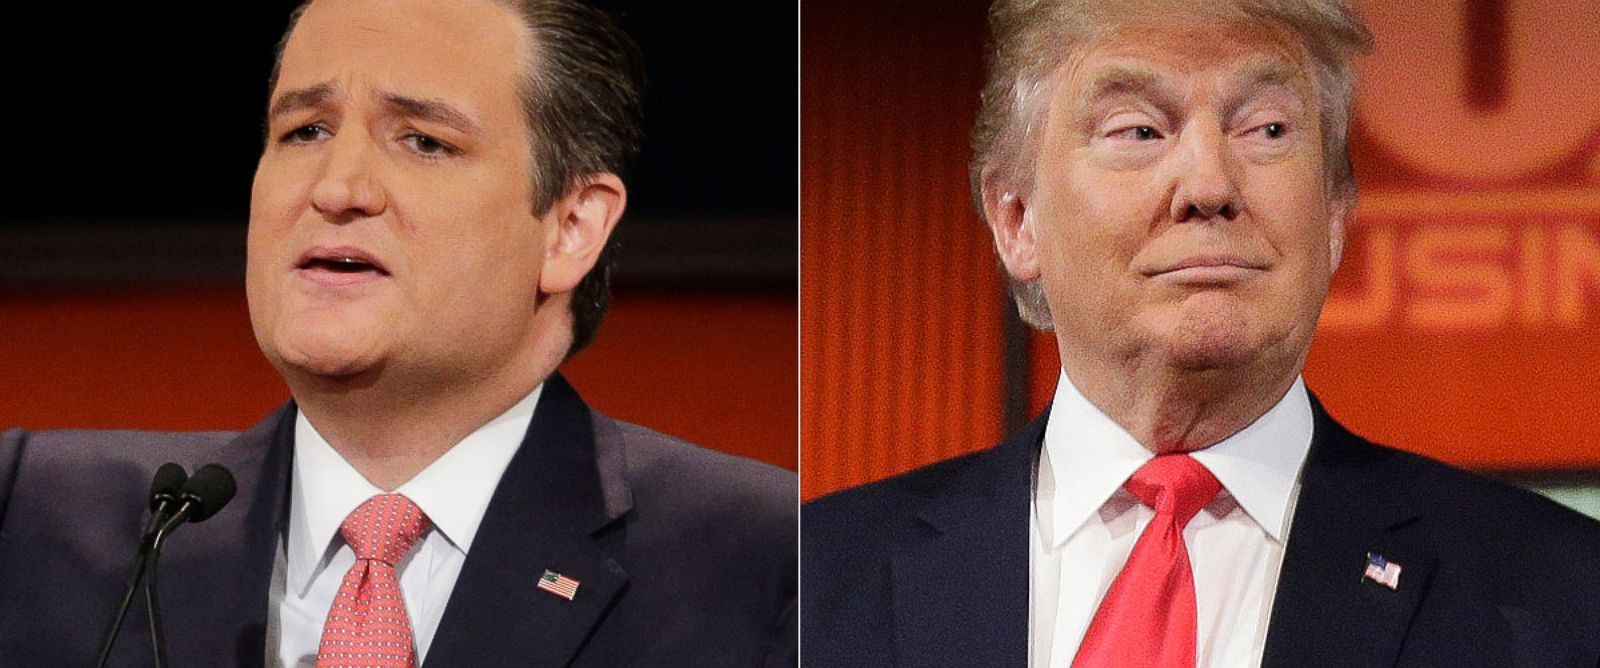 PHOTO: Republican presidential candidates Ted Cruz and Donald Trump during the Fox Business Network Republican presidential debate at the North Charleston Coliseum on Jan. 14, 2016, in North Charleston, S.C.